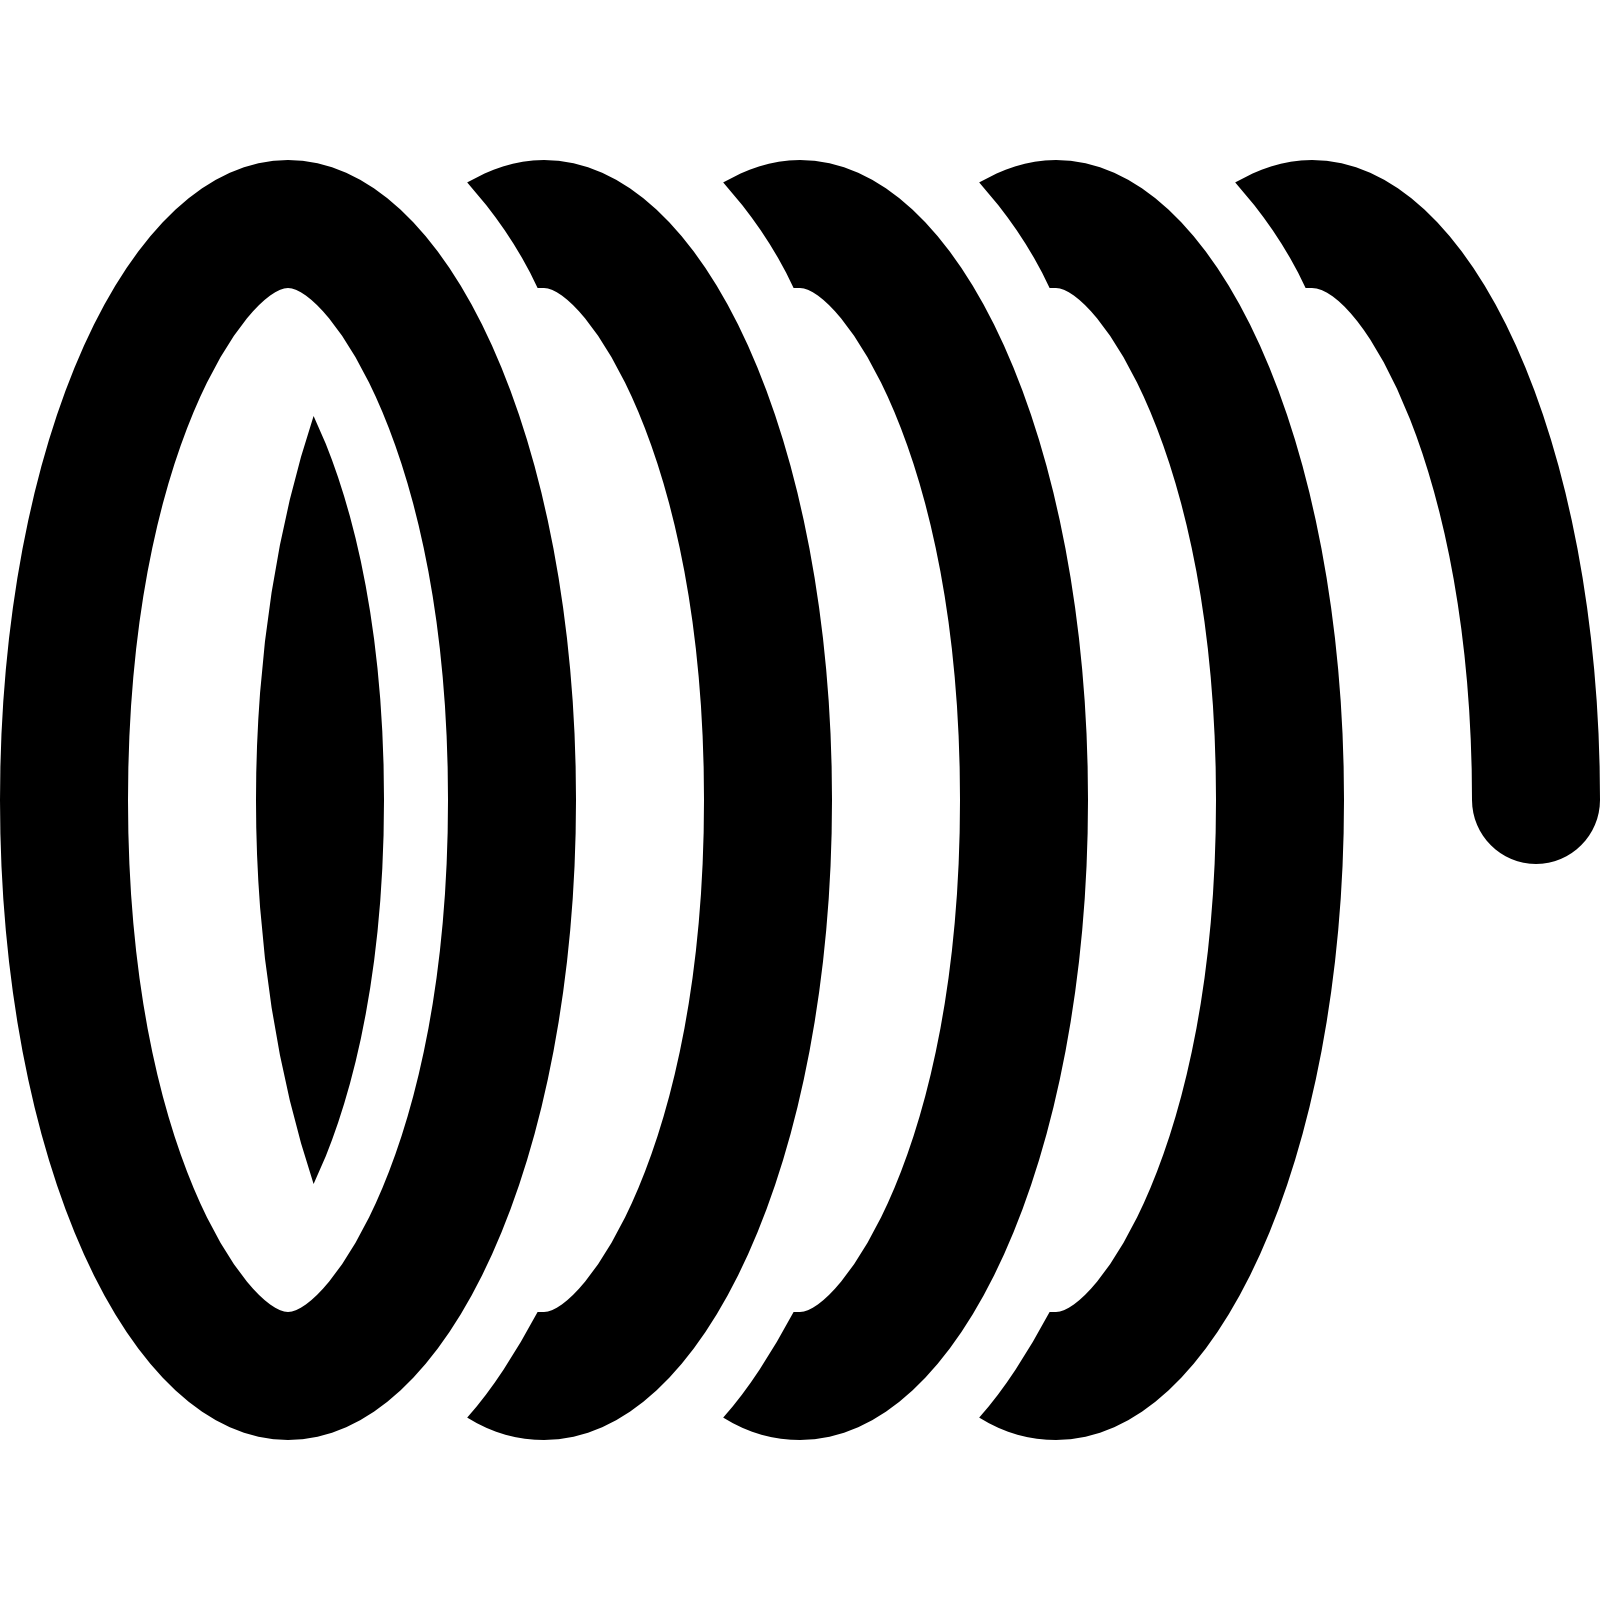 Mechanical spring png. Computer icons engineering download